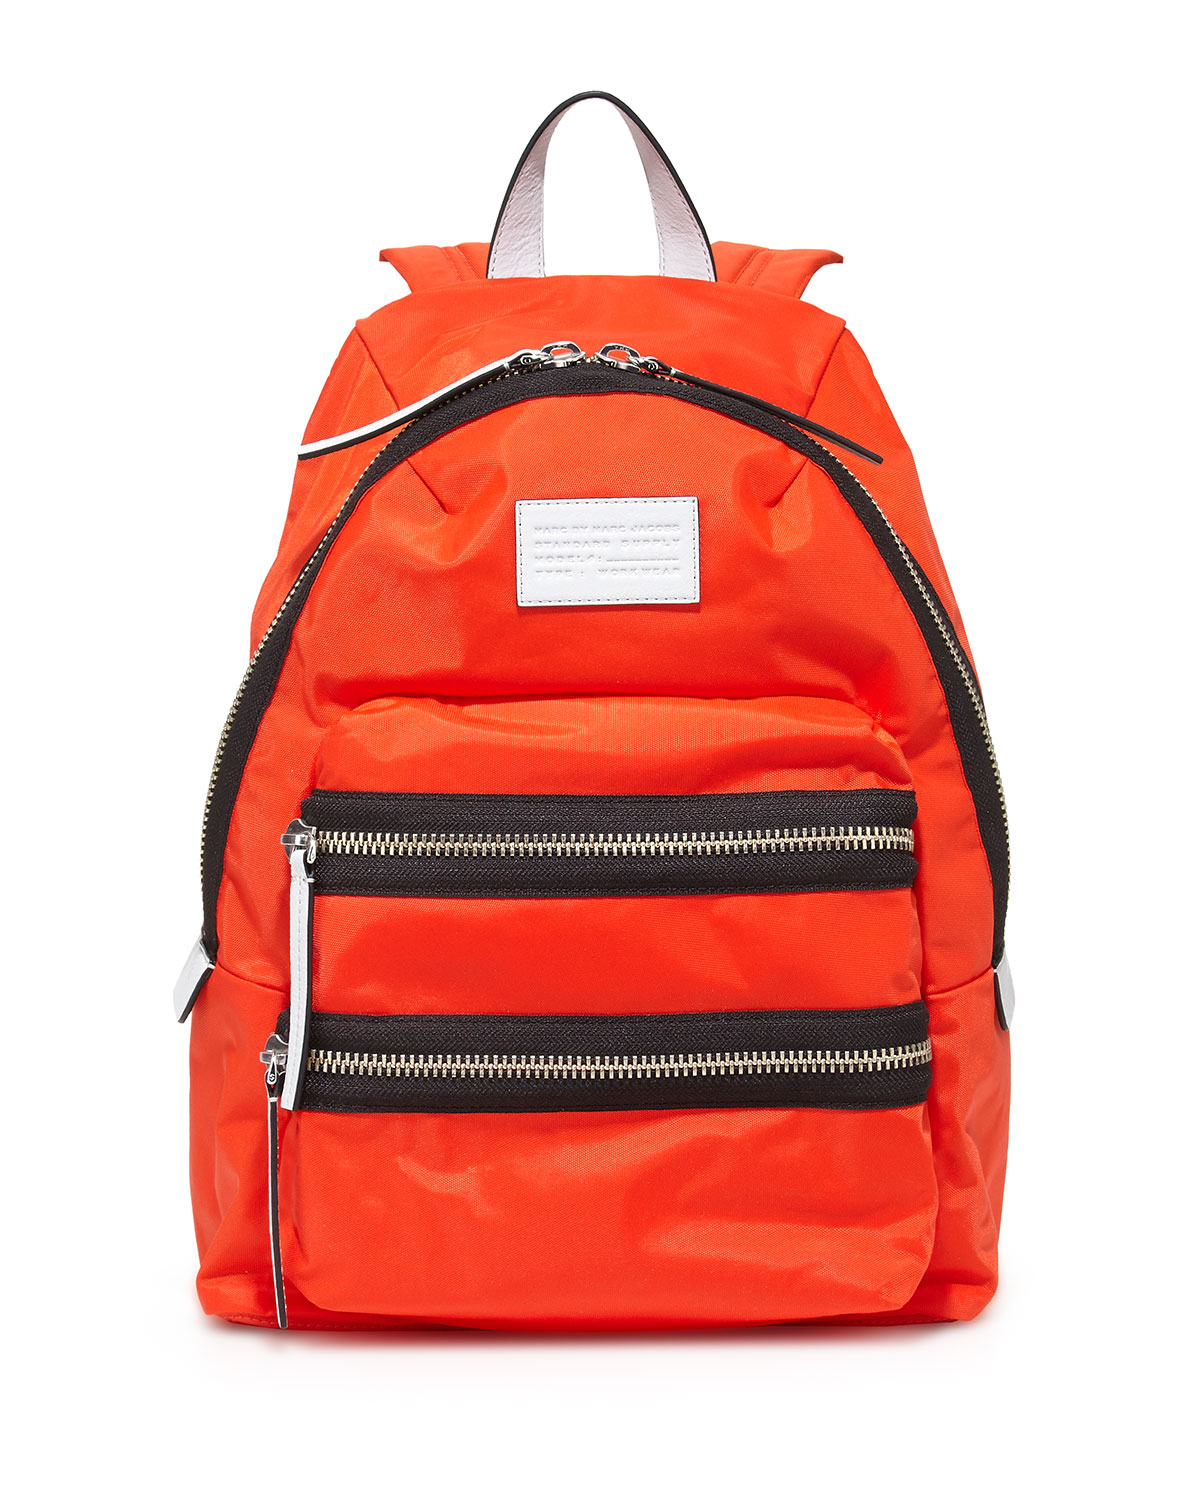 marc by marc jacobs domo arigato packrat backpack in orange bright tangelo lyst. Black Bedroom Furniture Sets. Home Design Ideas